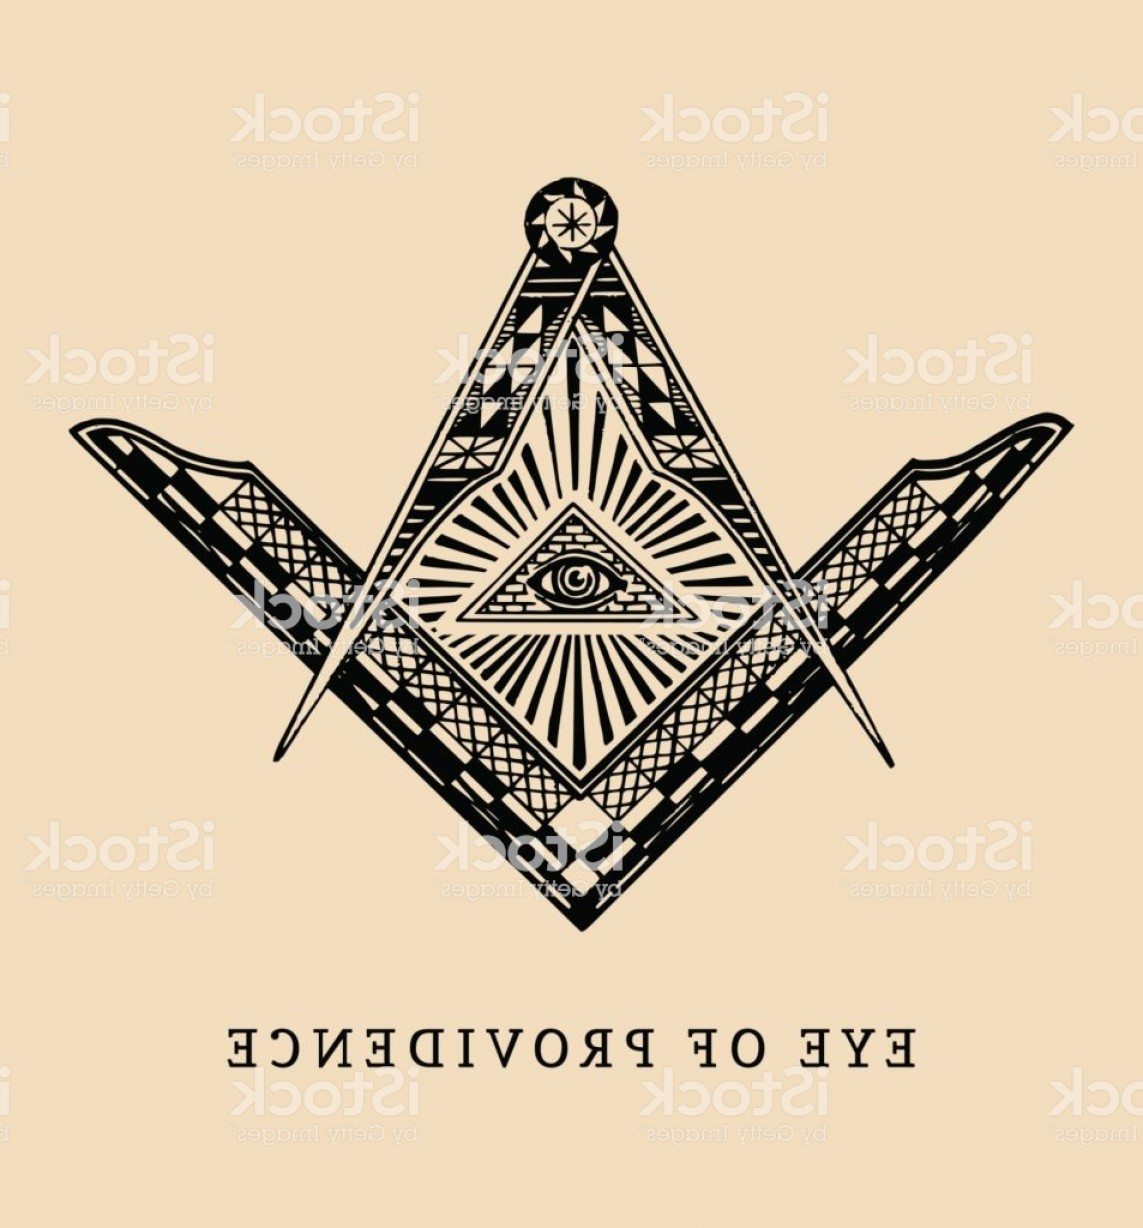 Pyramid With Eye Of Providence Vector: All Seeing Eye Of Providence Masonic Square And Compass Symbols Freemasonry Pyramid Gm